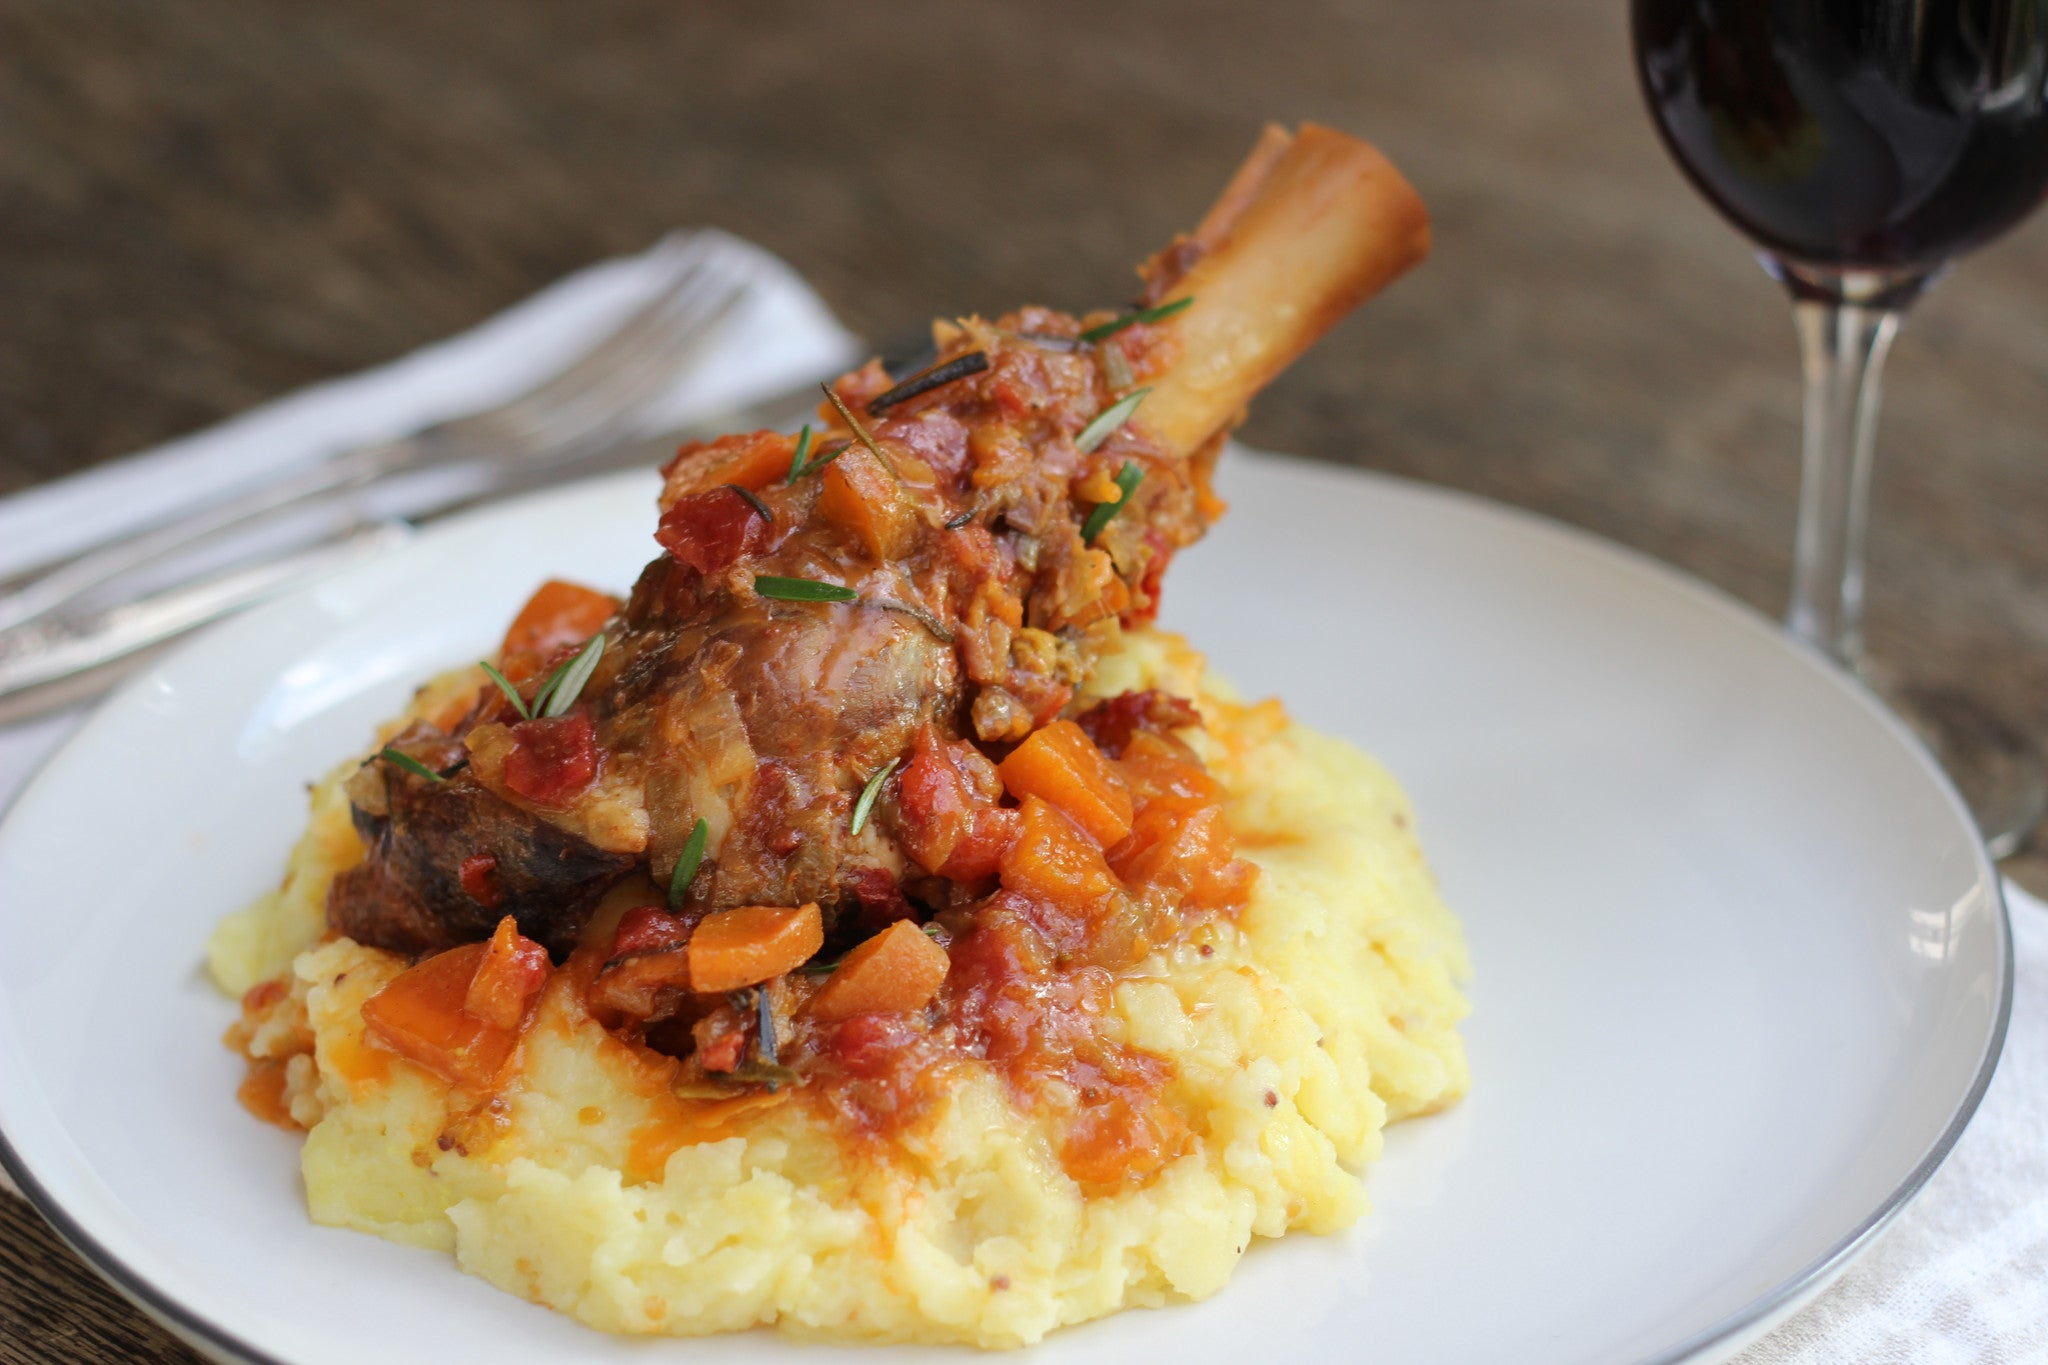 Tomato and Leek Lamb Shanks with Mustard Mash